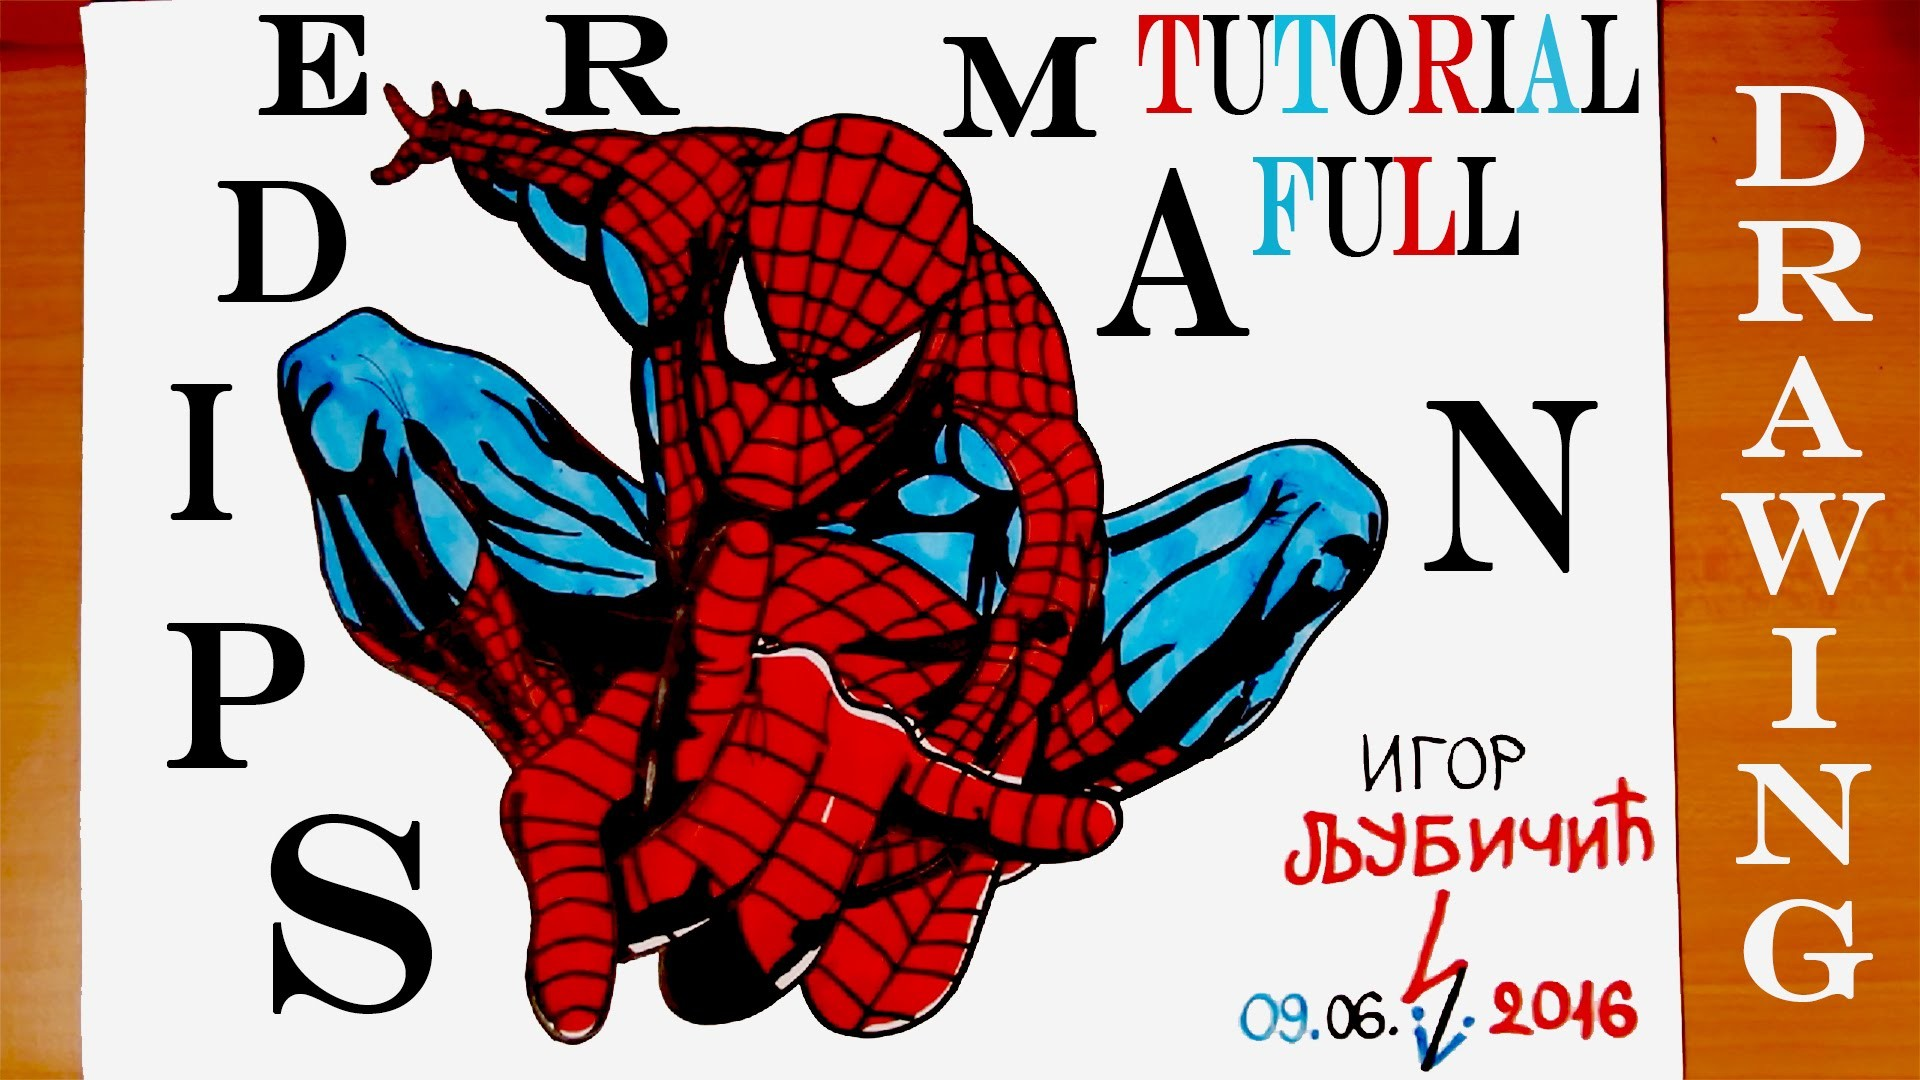 How To Draw Spiderman Step By Step Easy On Paper Full Body For Kids